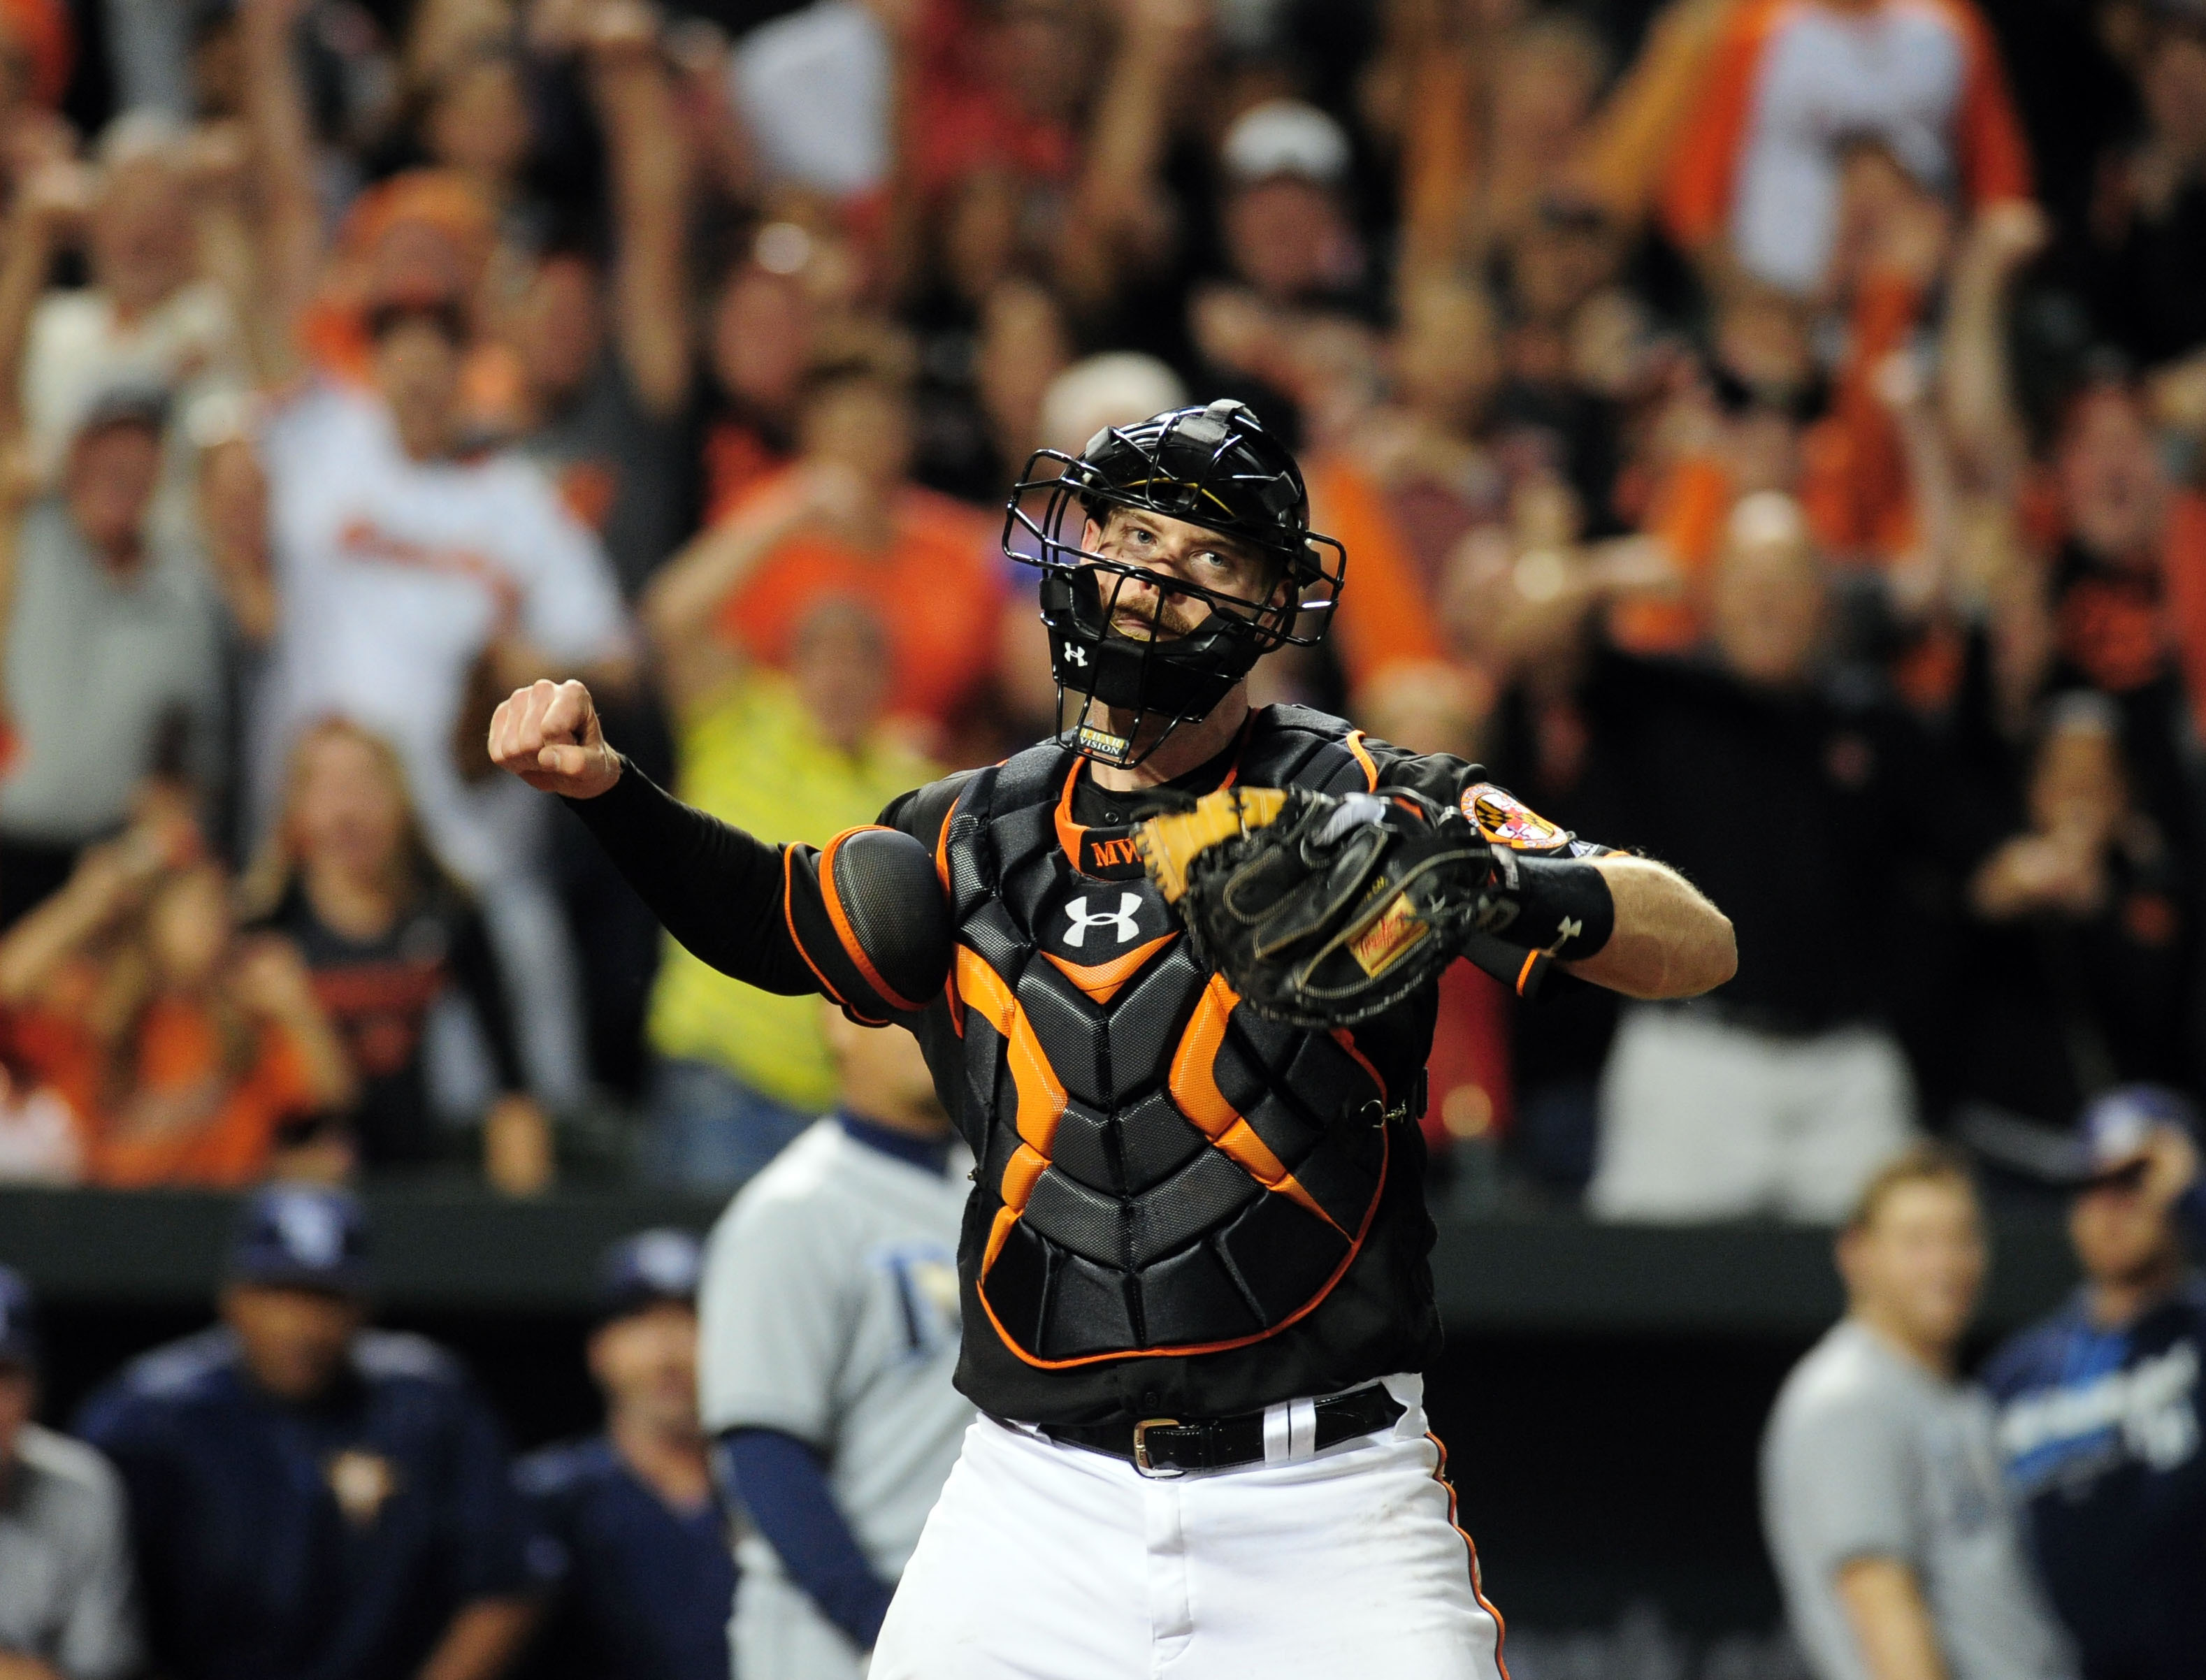 9542767-mlb-tampa-bay-rays-at-baltimore-orioles